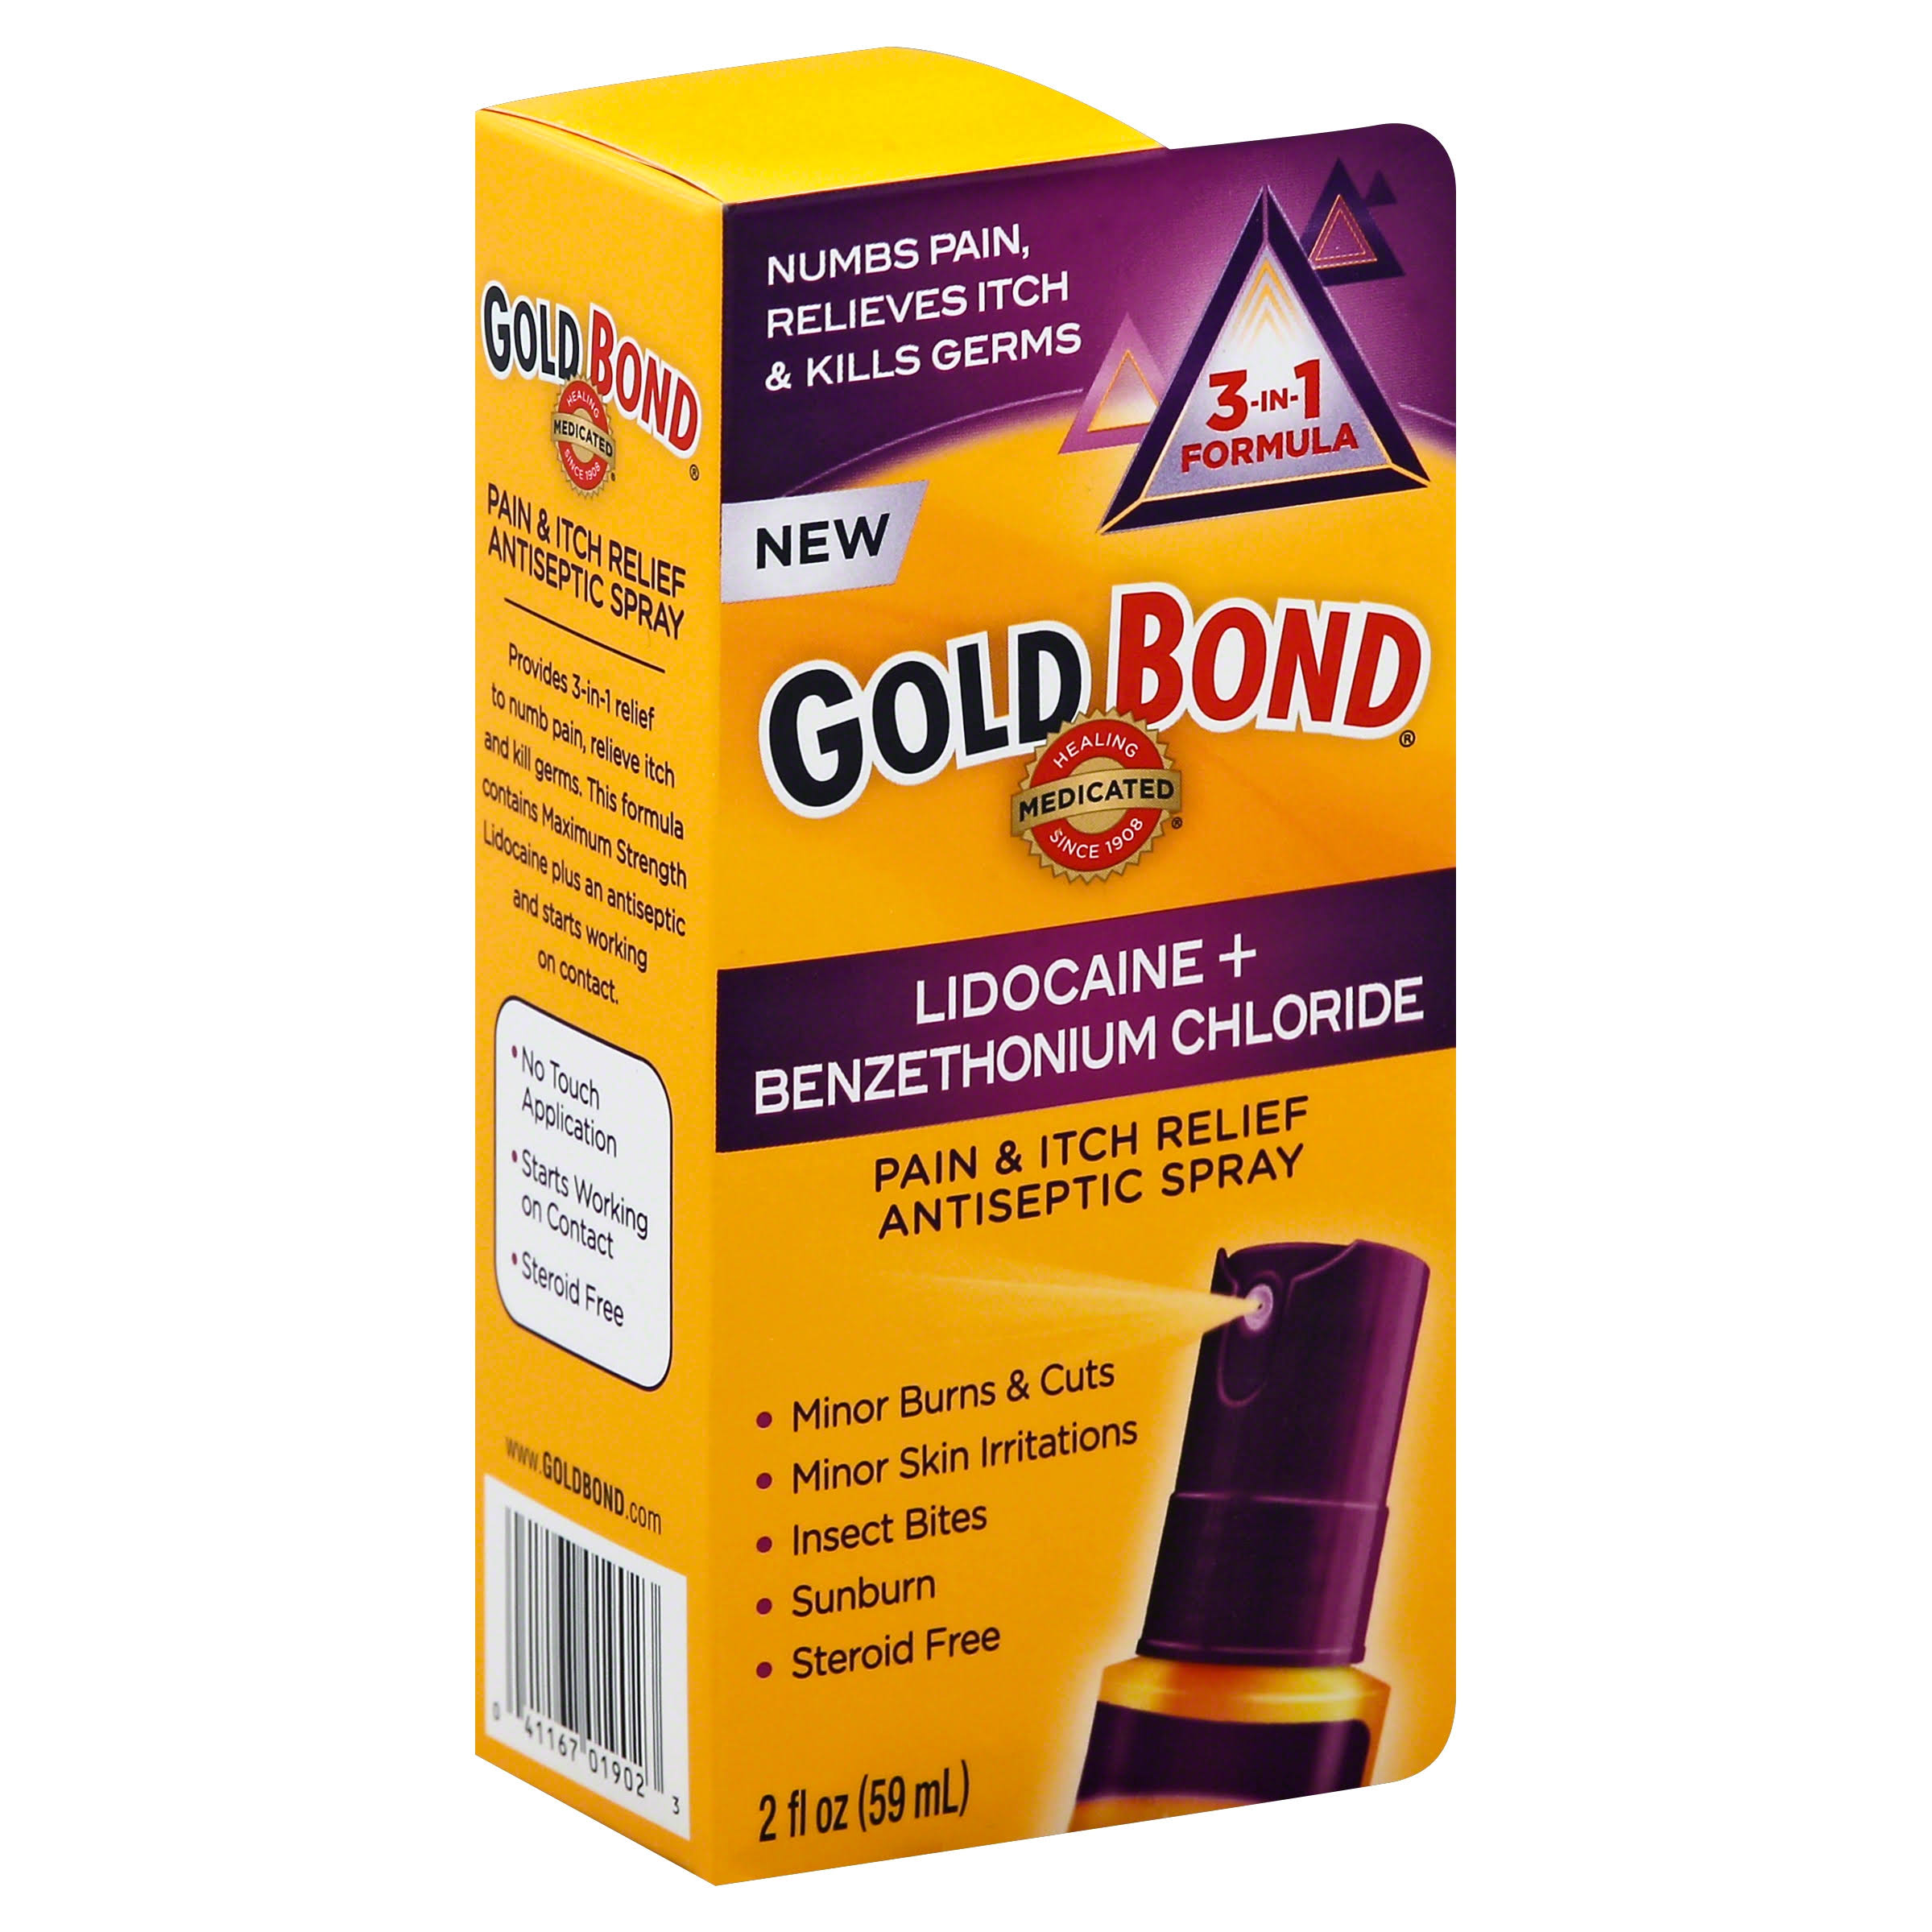 Gold Bond Pain & Itch Relief Antiseptic Spray - With 4% Lidocaine, Pack of 2